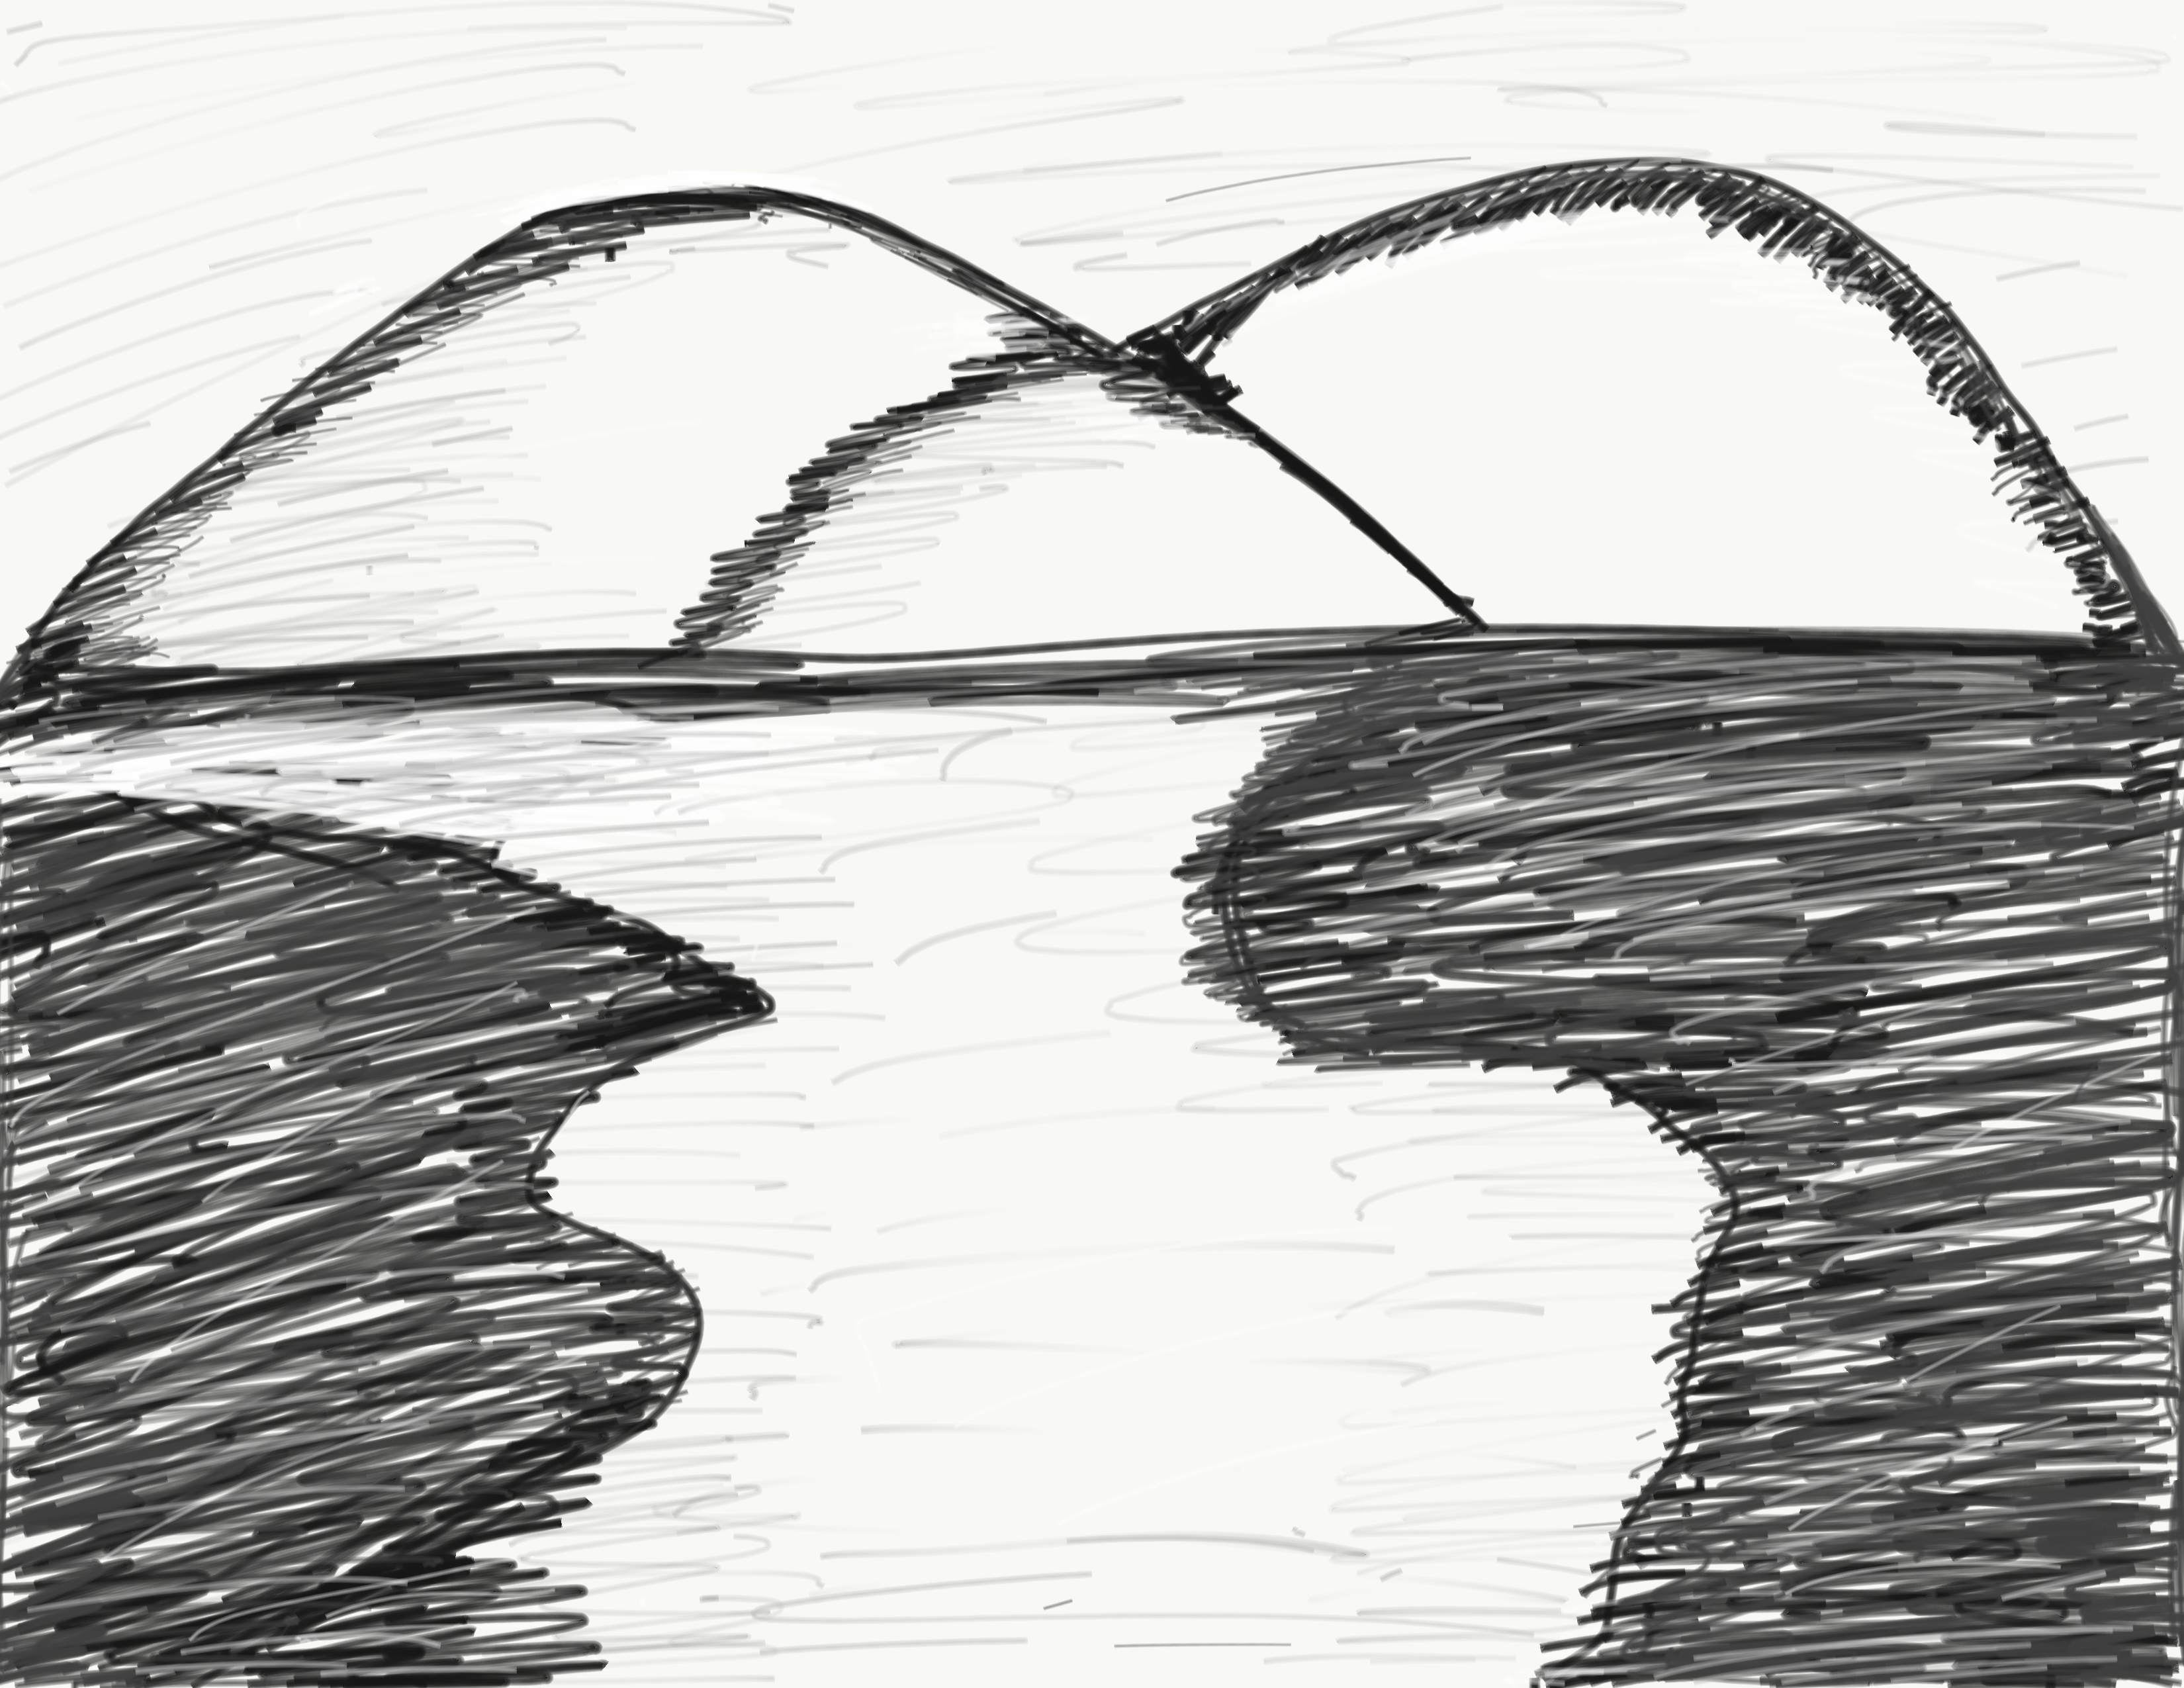 Sketch of mountains and water